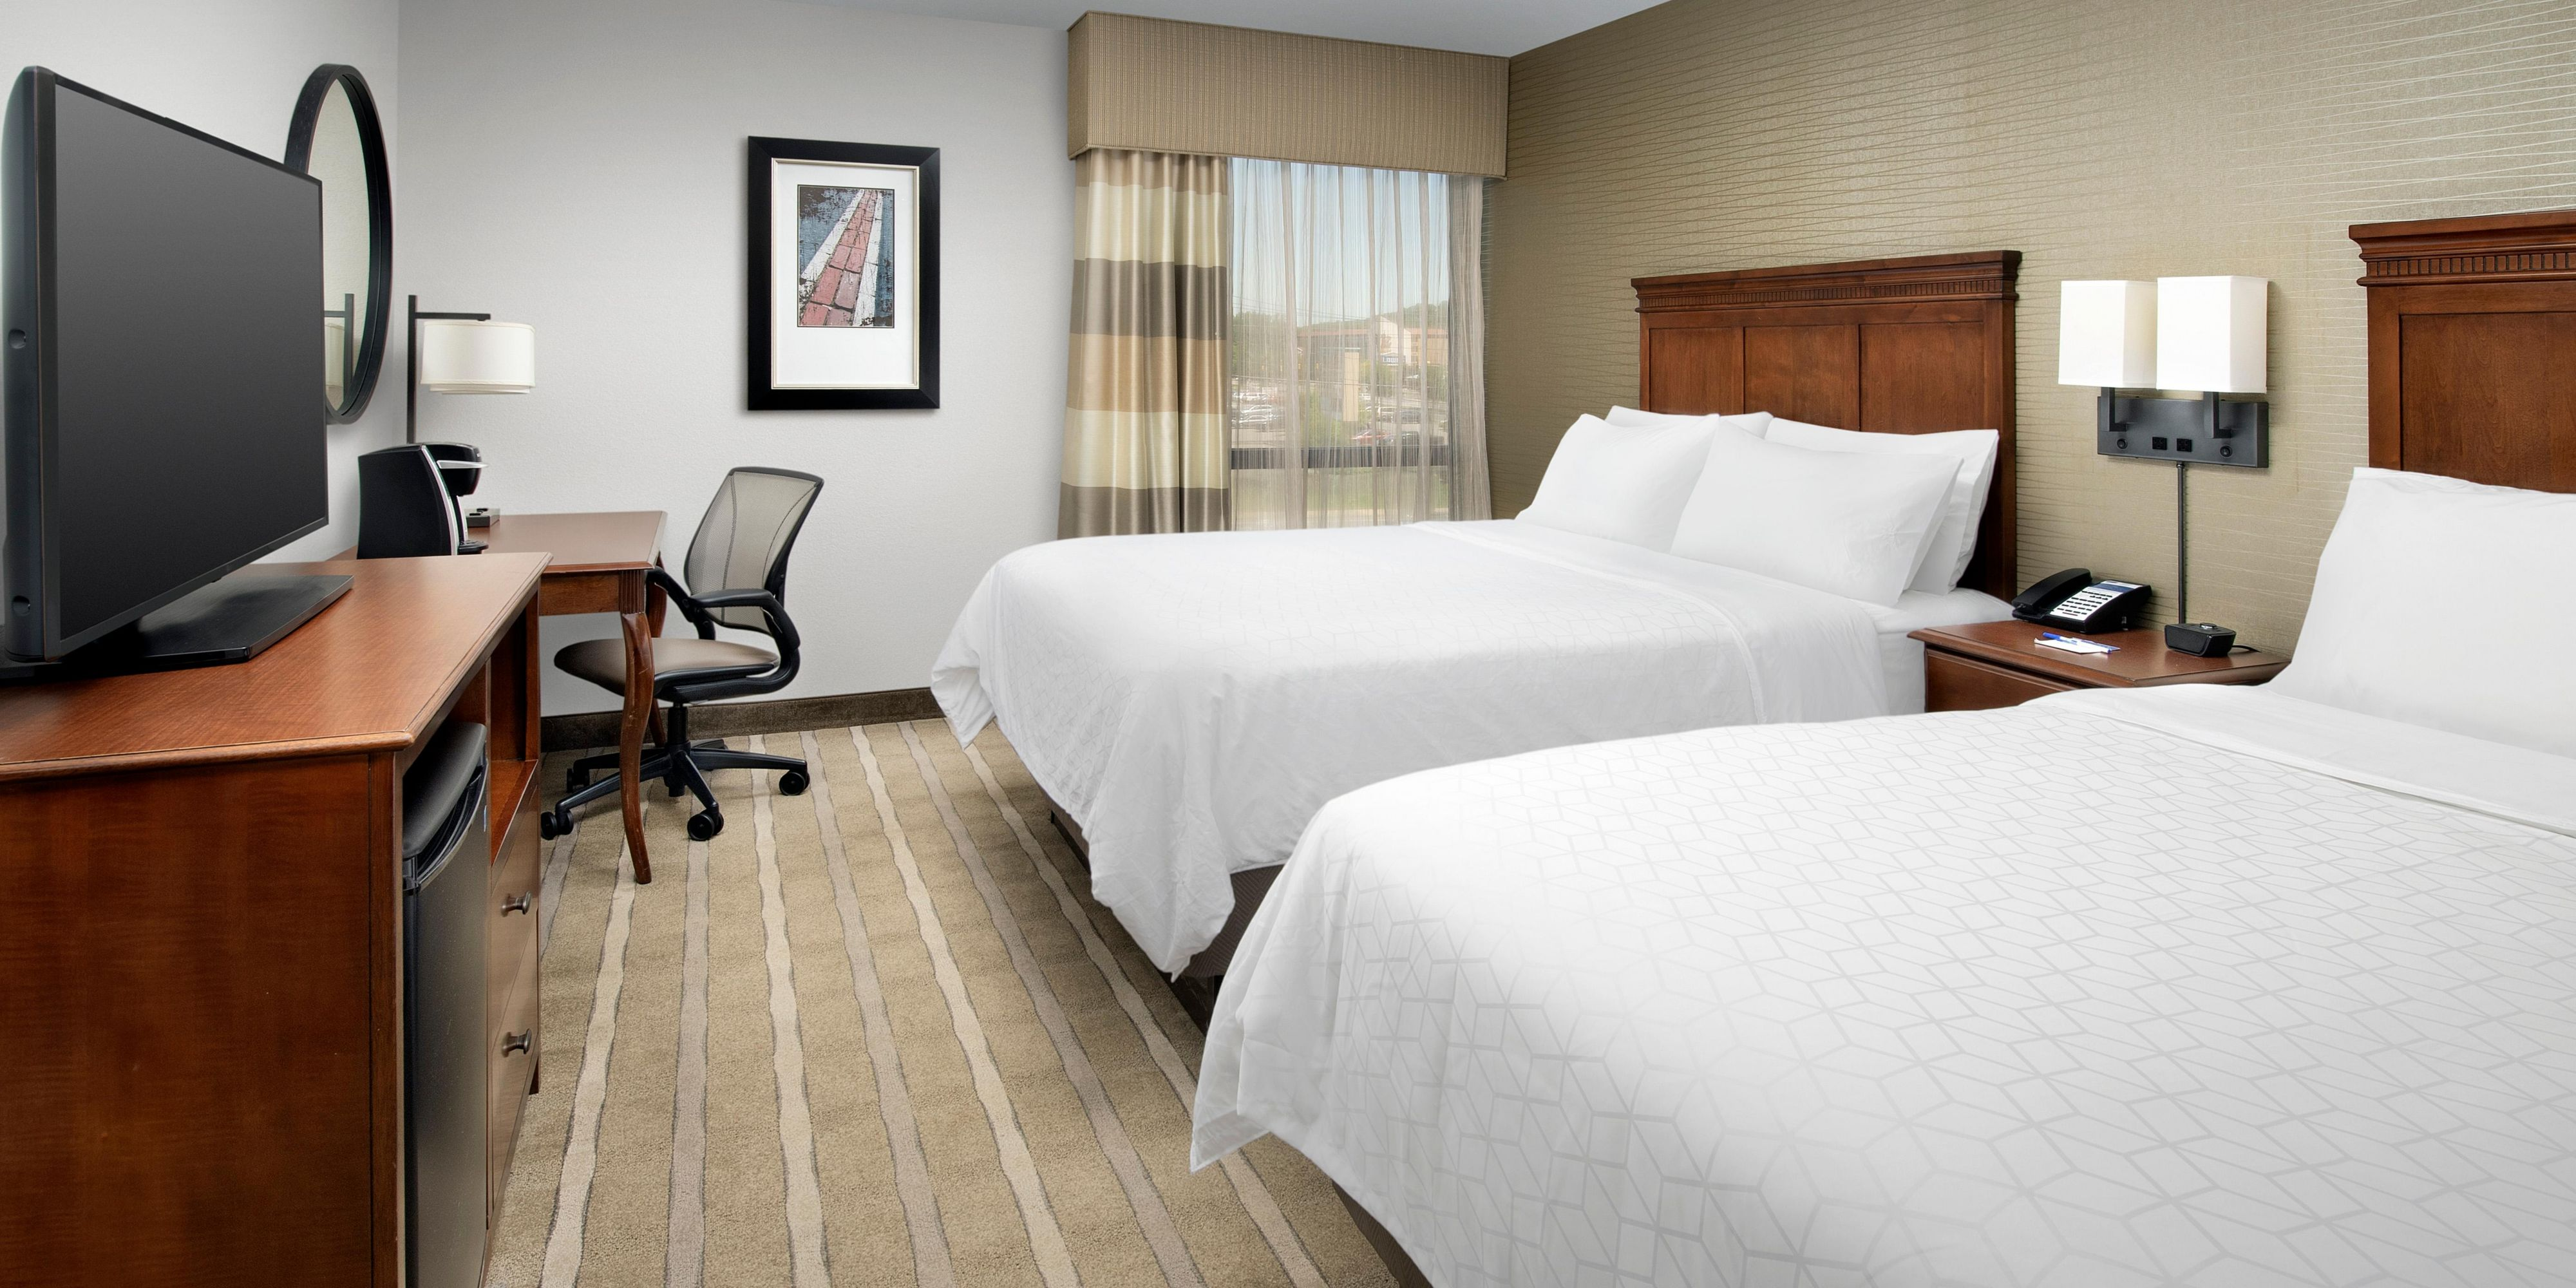 Boston Hotels In Woburn With Free Parking | Holiday Inn